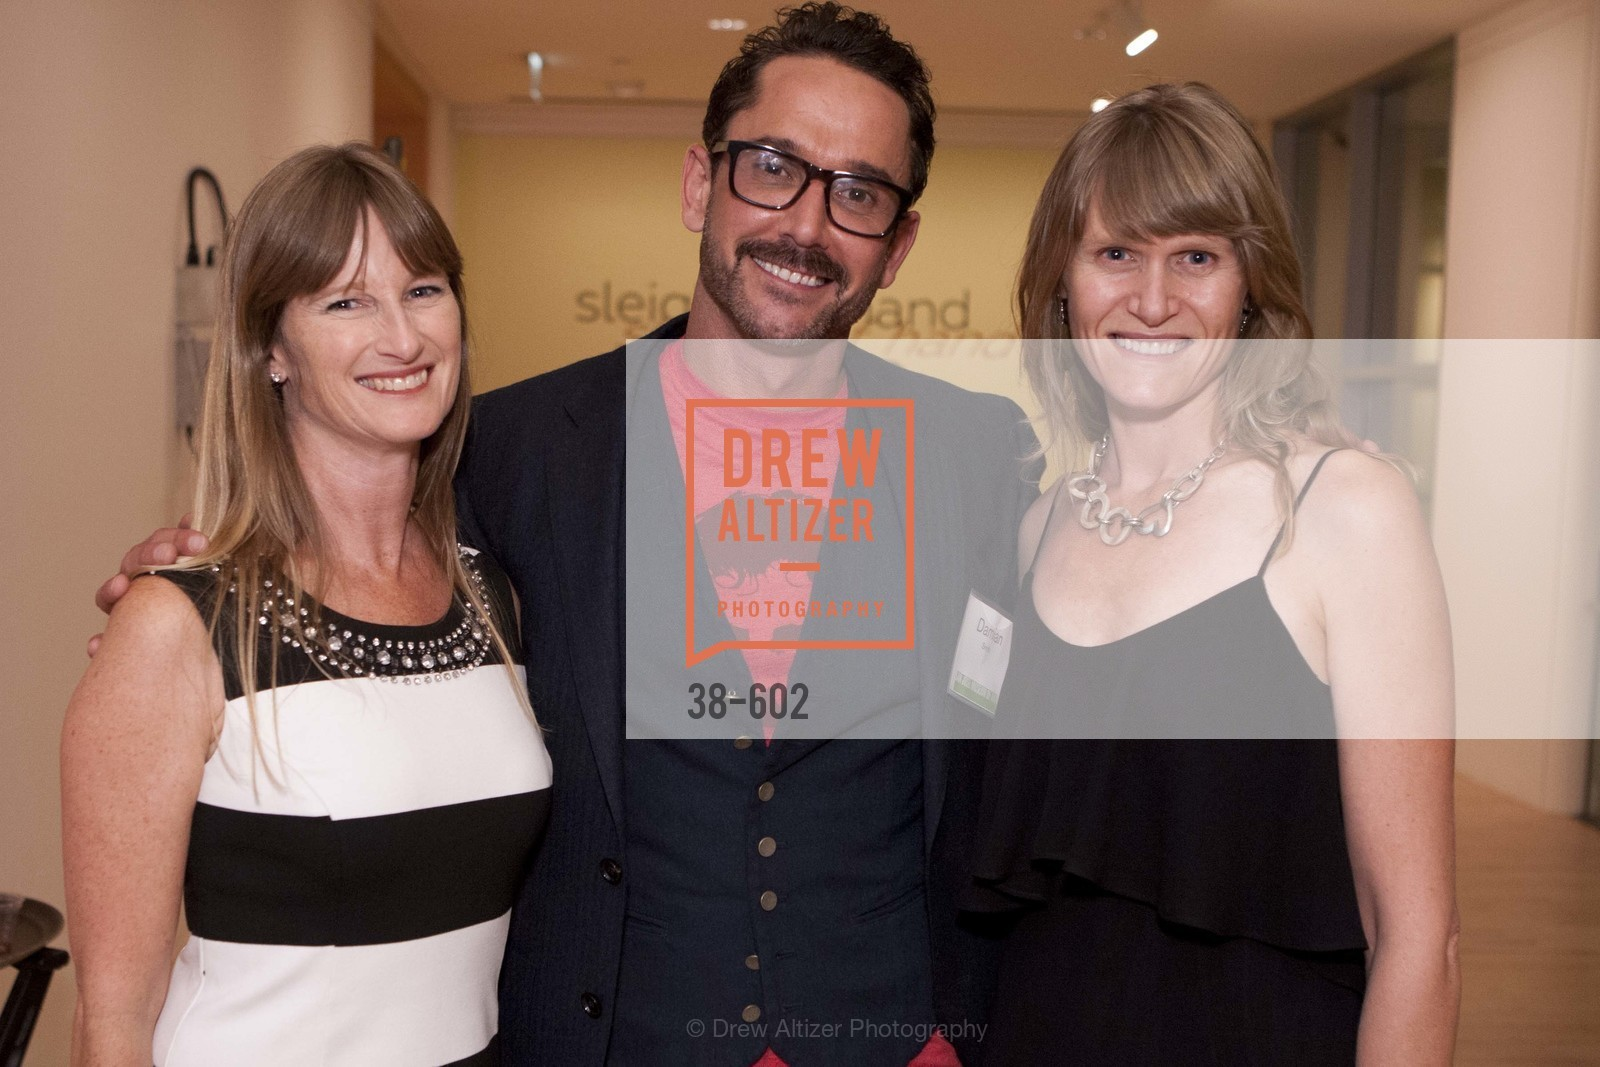 Jennifer Roseborough, Damian Smith, Janette Karthaus, SAN JOSE MUSEUM OF ART Fall Reception Opening, US, October 8th, 2014,Drew Altizer, Drew Altizer Photography, full-service agency, private events, San Francisco photographer, photographer california